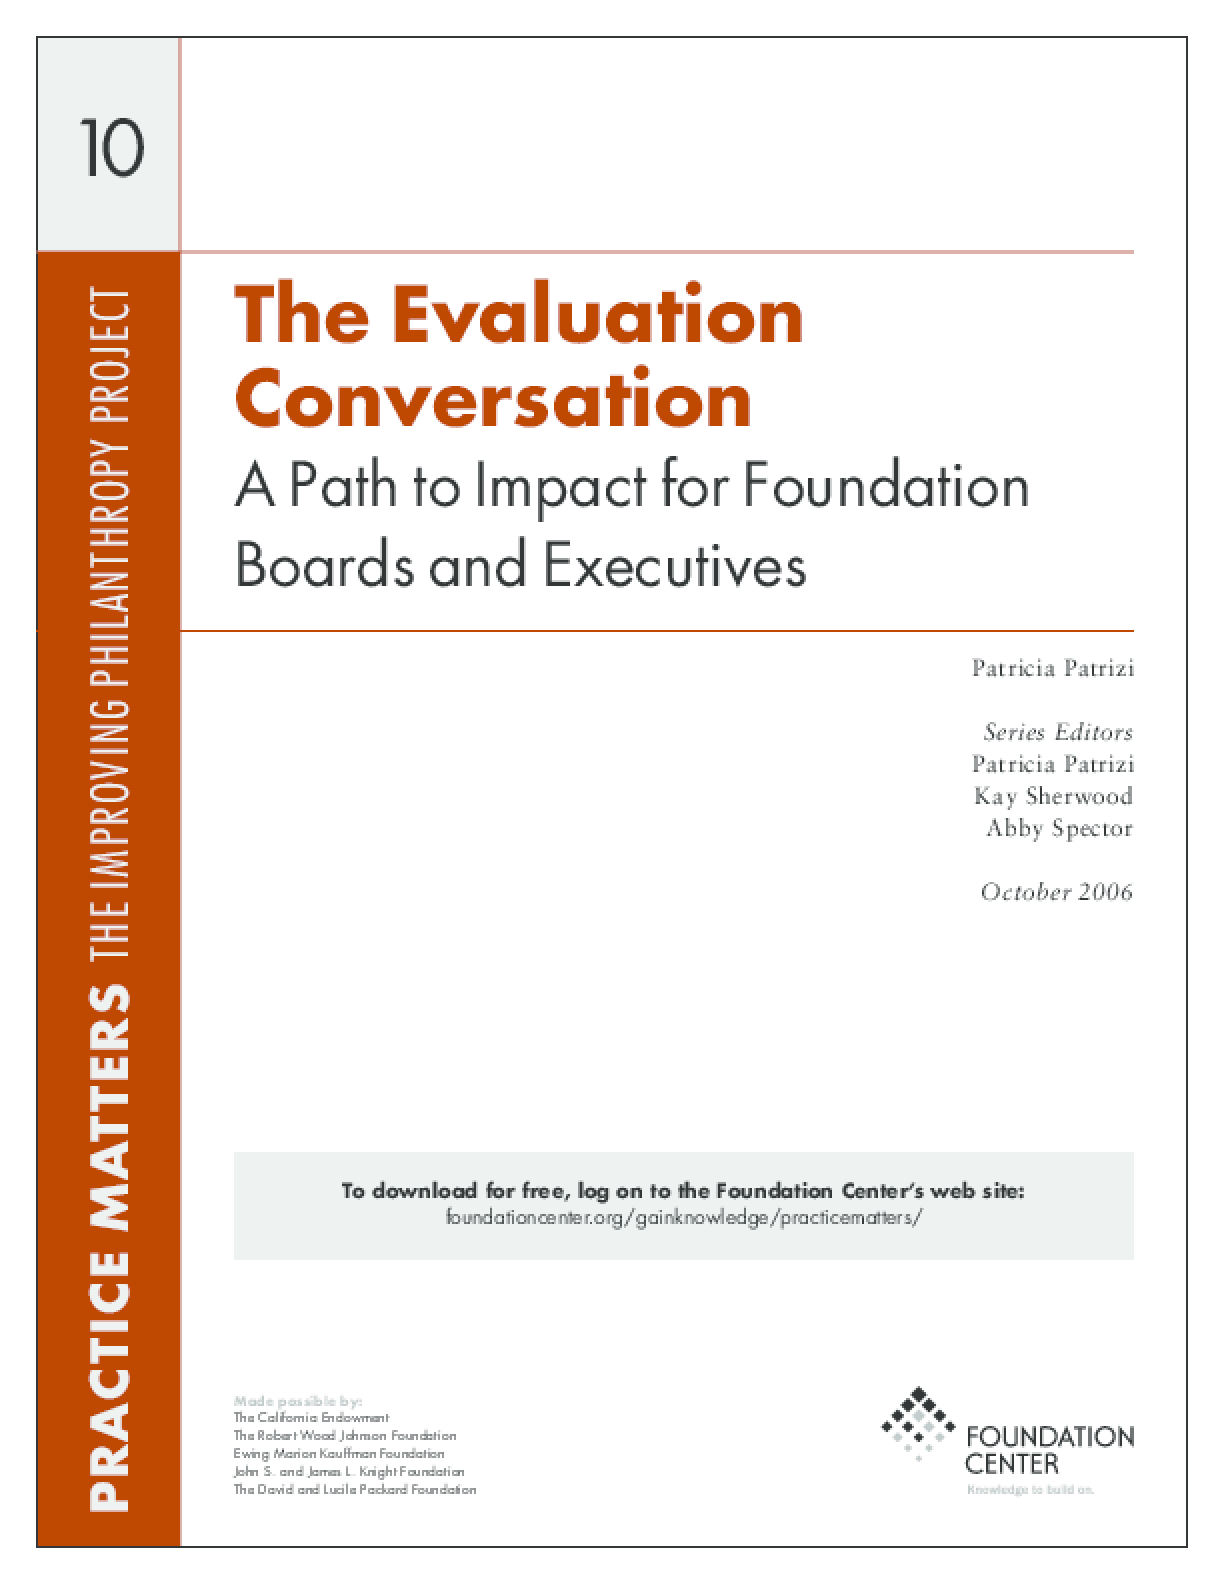 The Evaluation Conversation: A Path to Impact for Foundation Boards and Executives